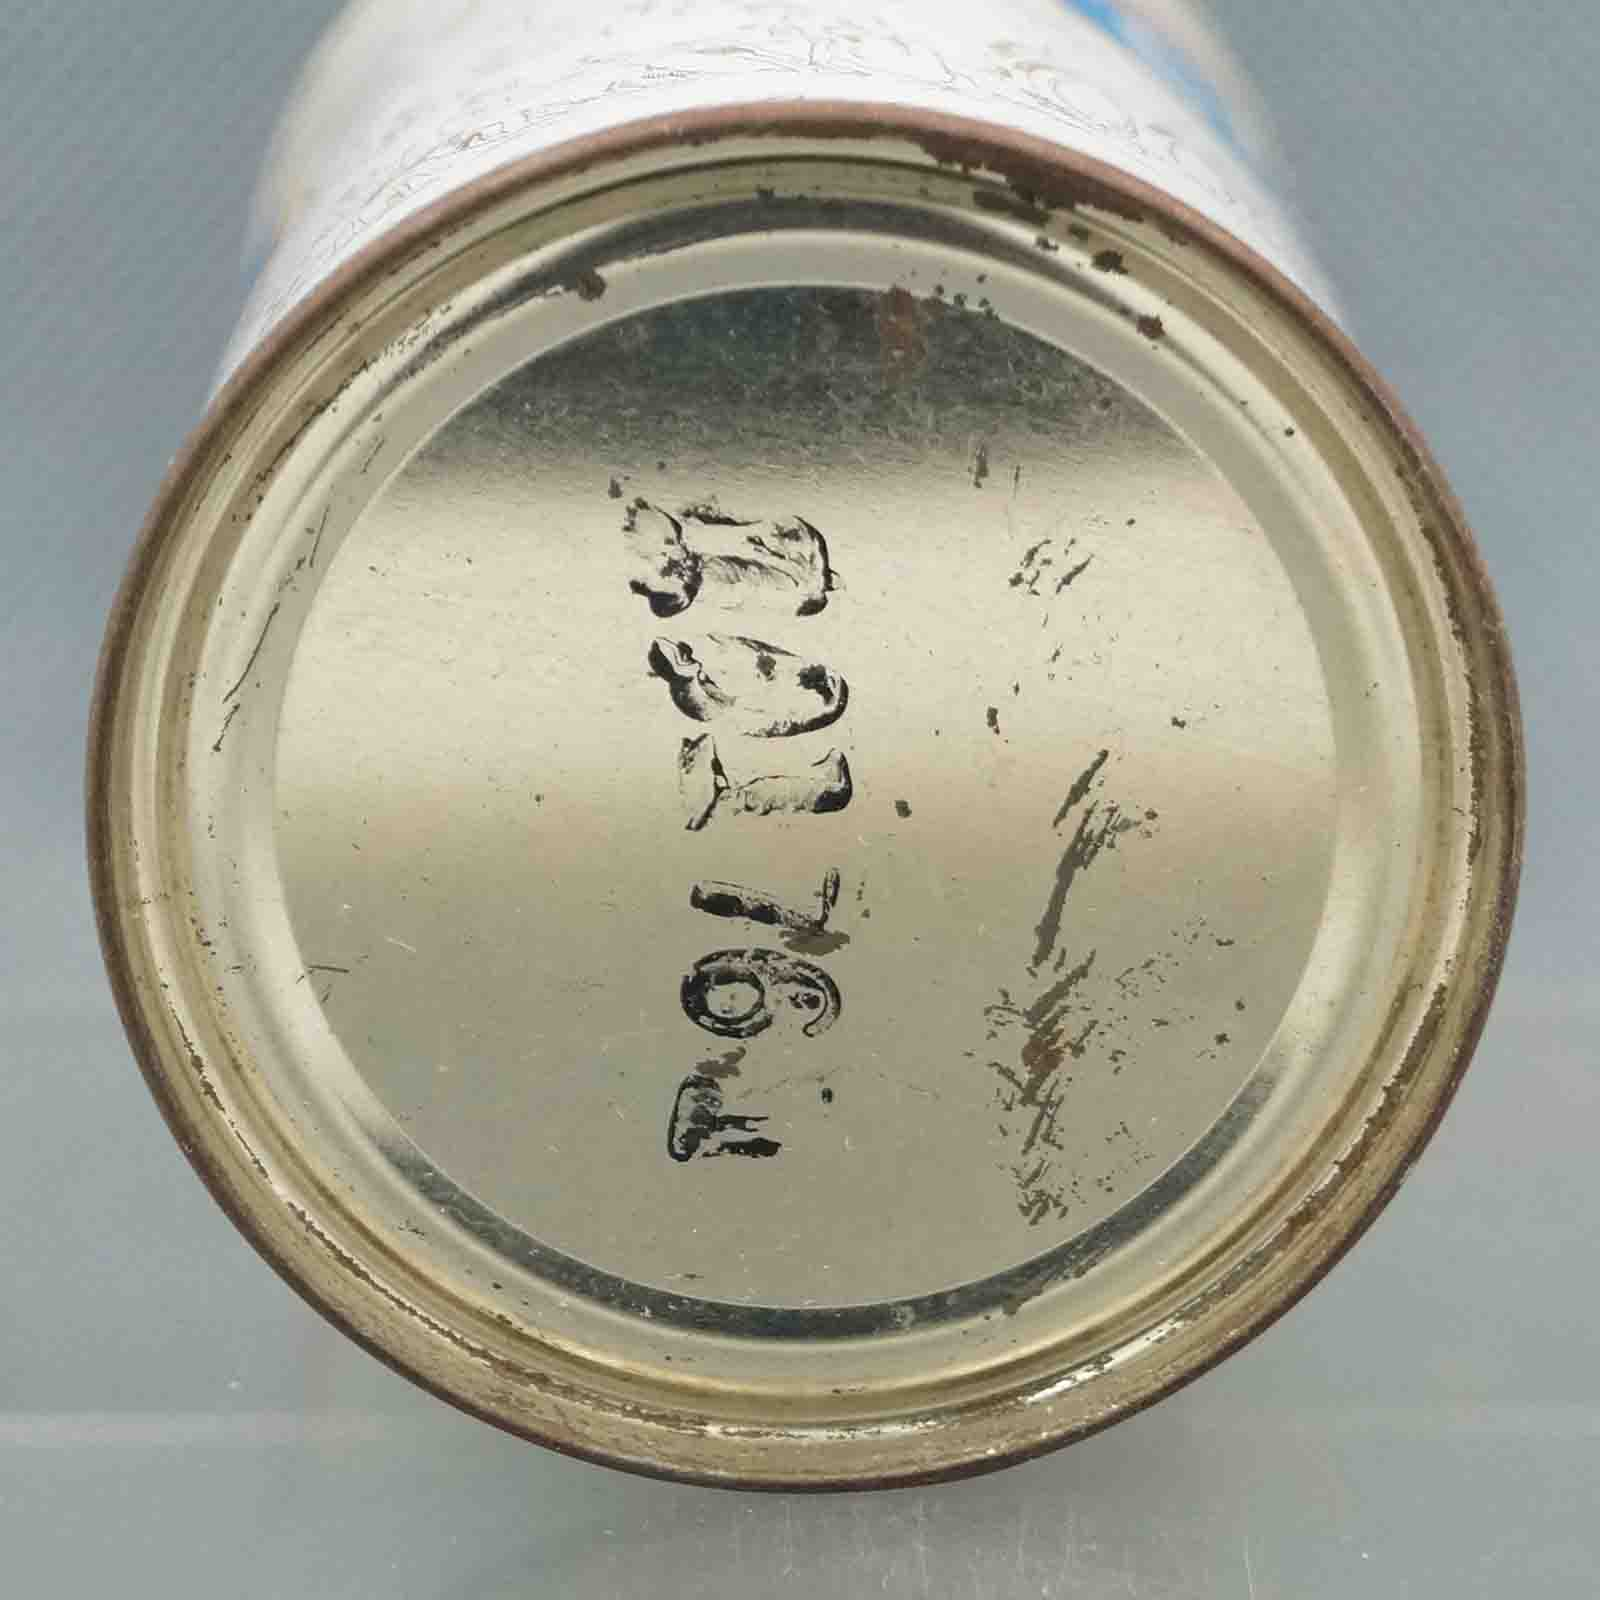 heilemans 75-22 pull tab beer can 6